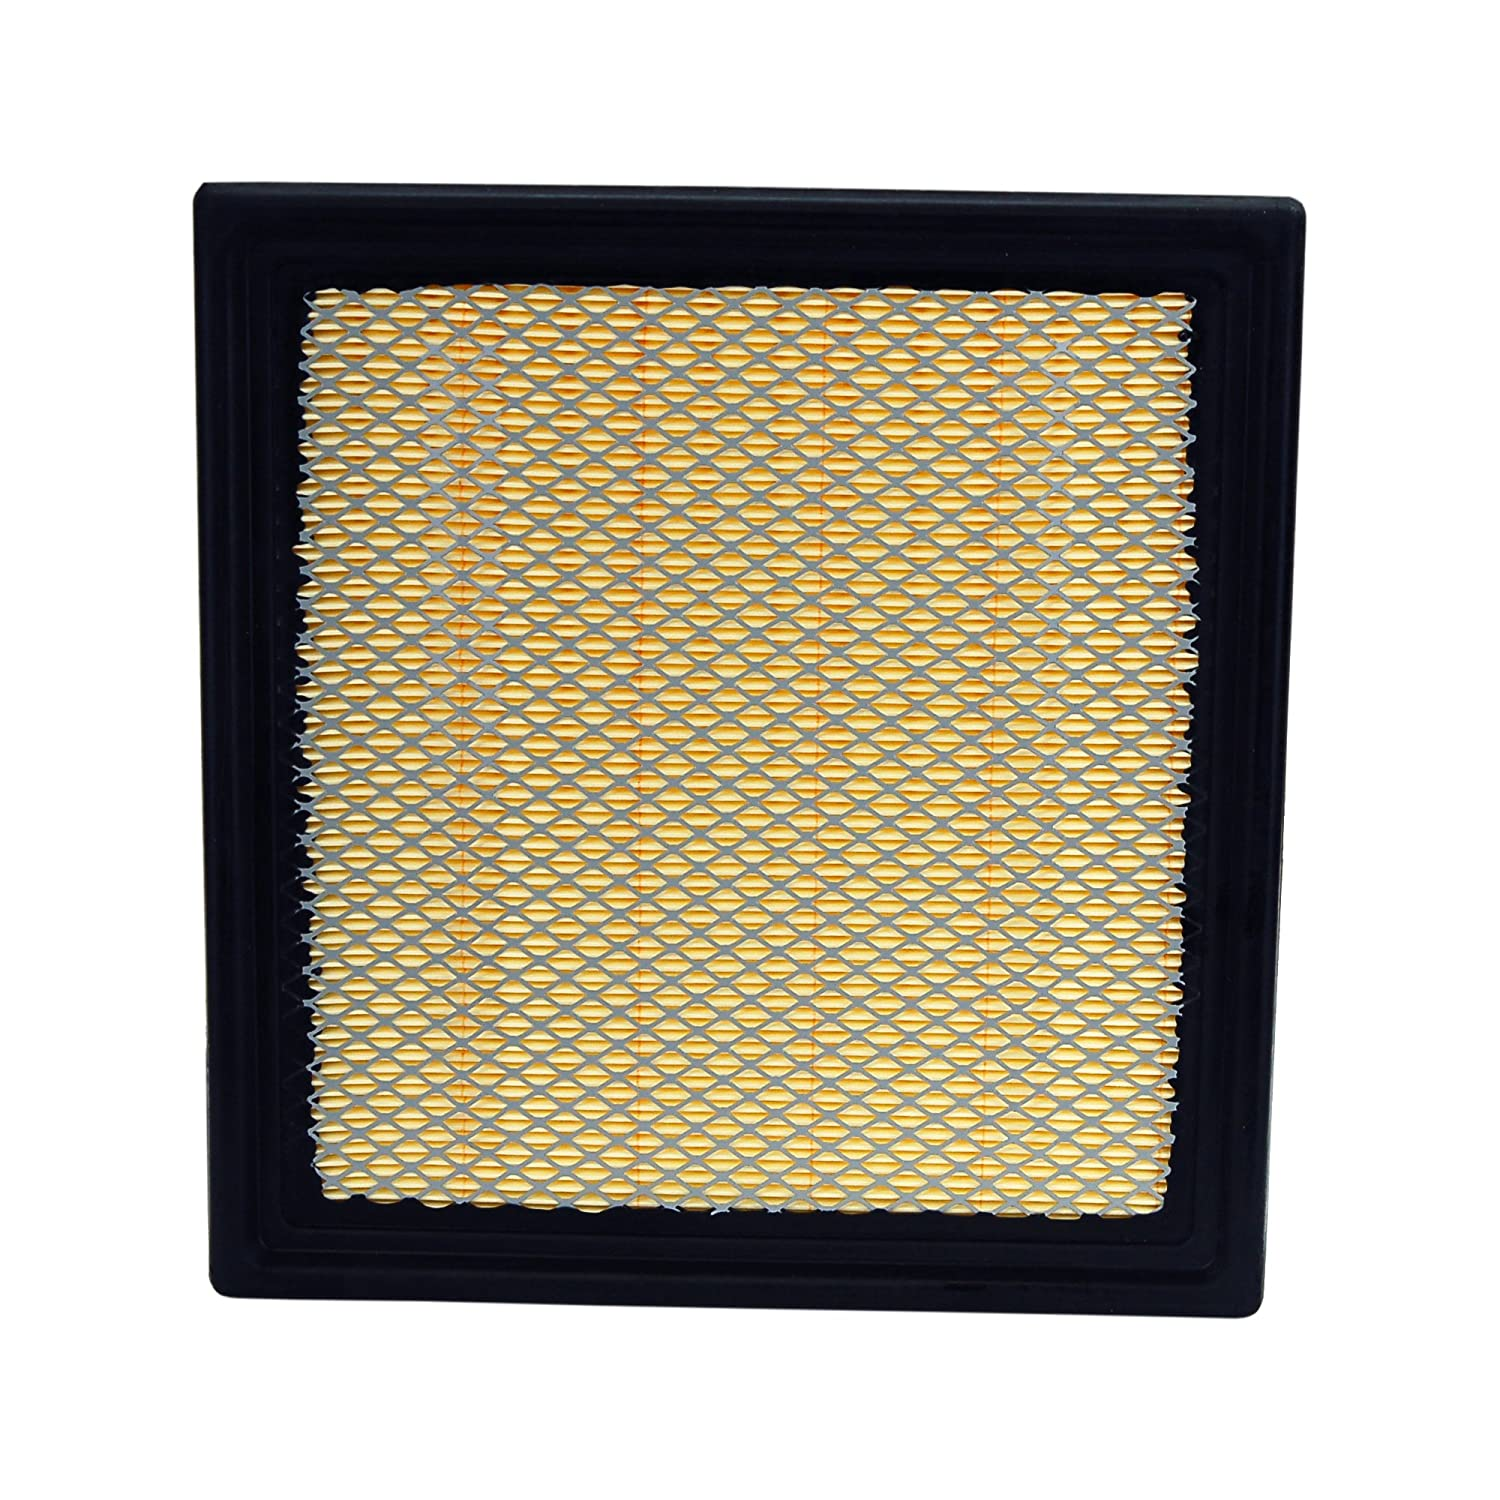 F-250 BBO AUTO BCA10262 Engine Air Filter Fits Ford F-150 F-350 Lincoln Navigator FA1883 and CA10262 REPLACEMENT Expedition